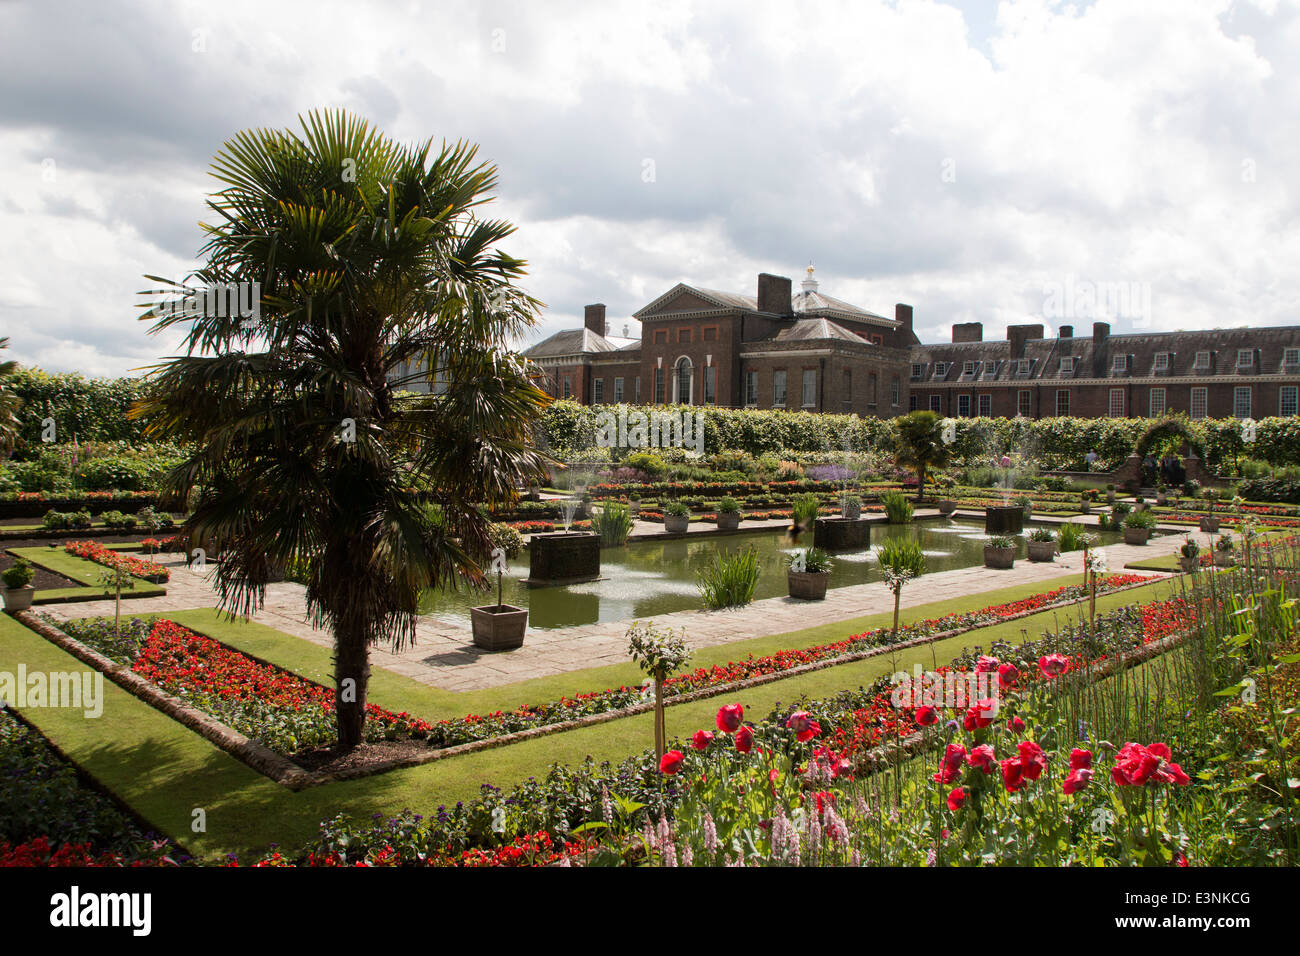 Sunken Gardens Stock Photos & Sunken Gardens Stock Images - Alamy